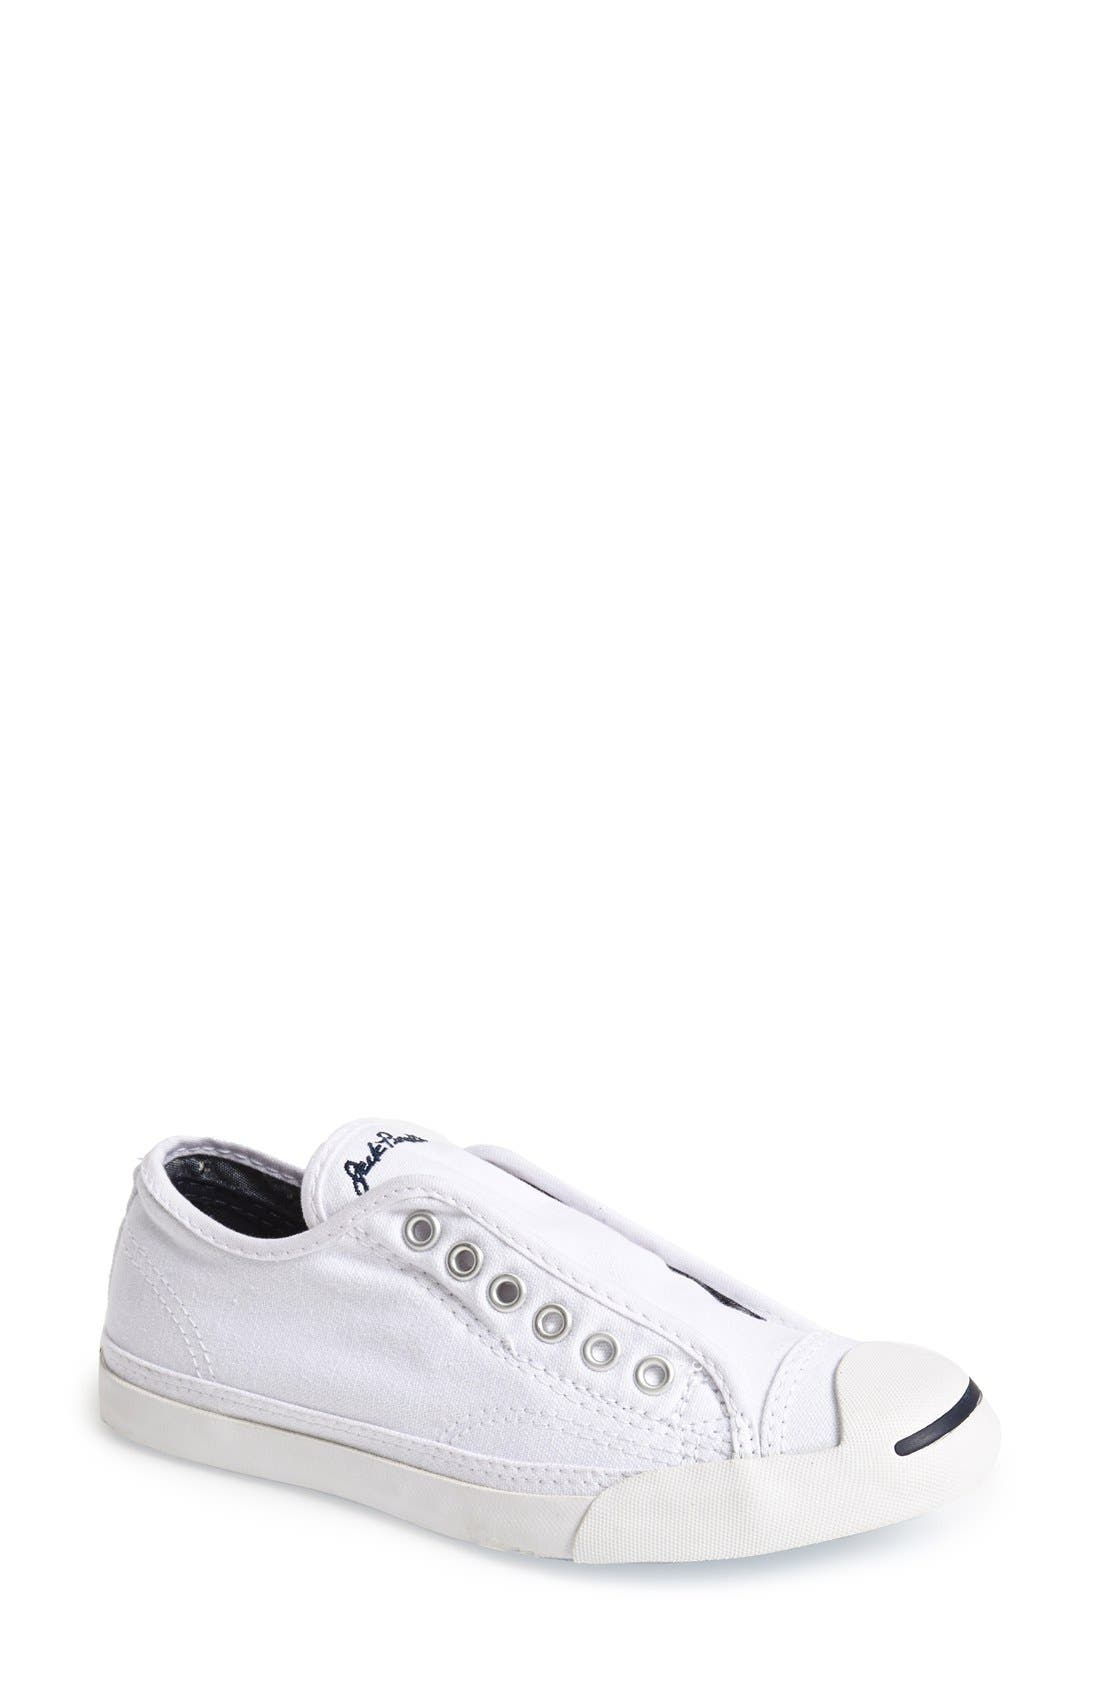 Jack Purcell Low Top Sneaker,                         Main,                         color, OPTIC WHITE